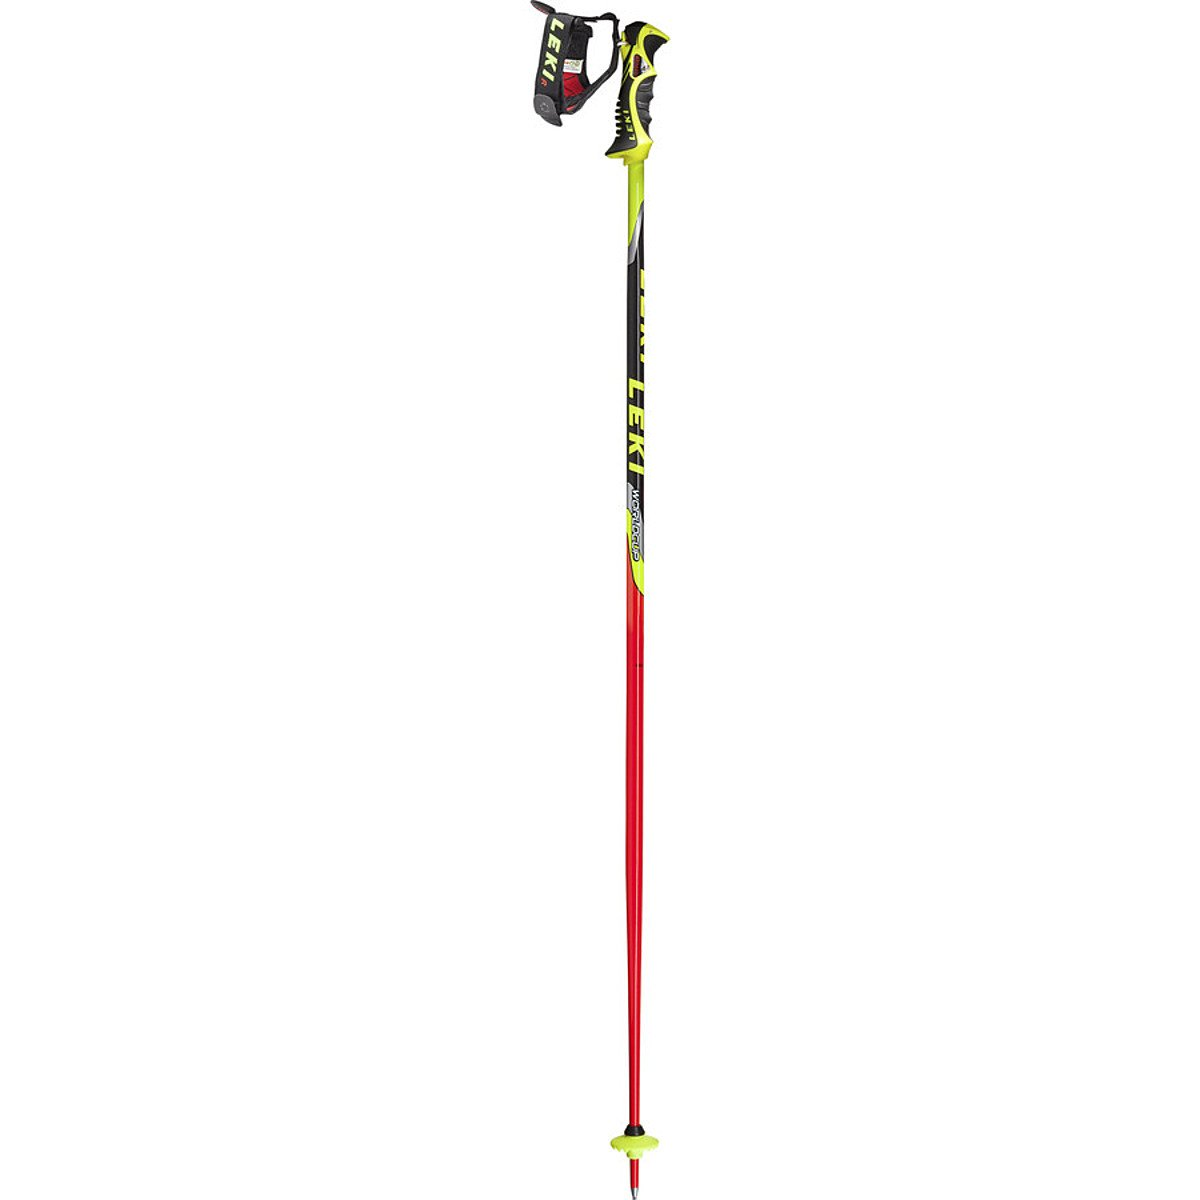 LEKI TBS WorldCup SL Trigger Ski Pole One Color, 52in(130cm) by Leki